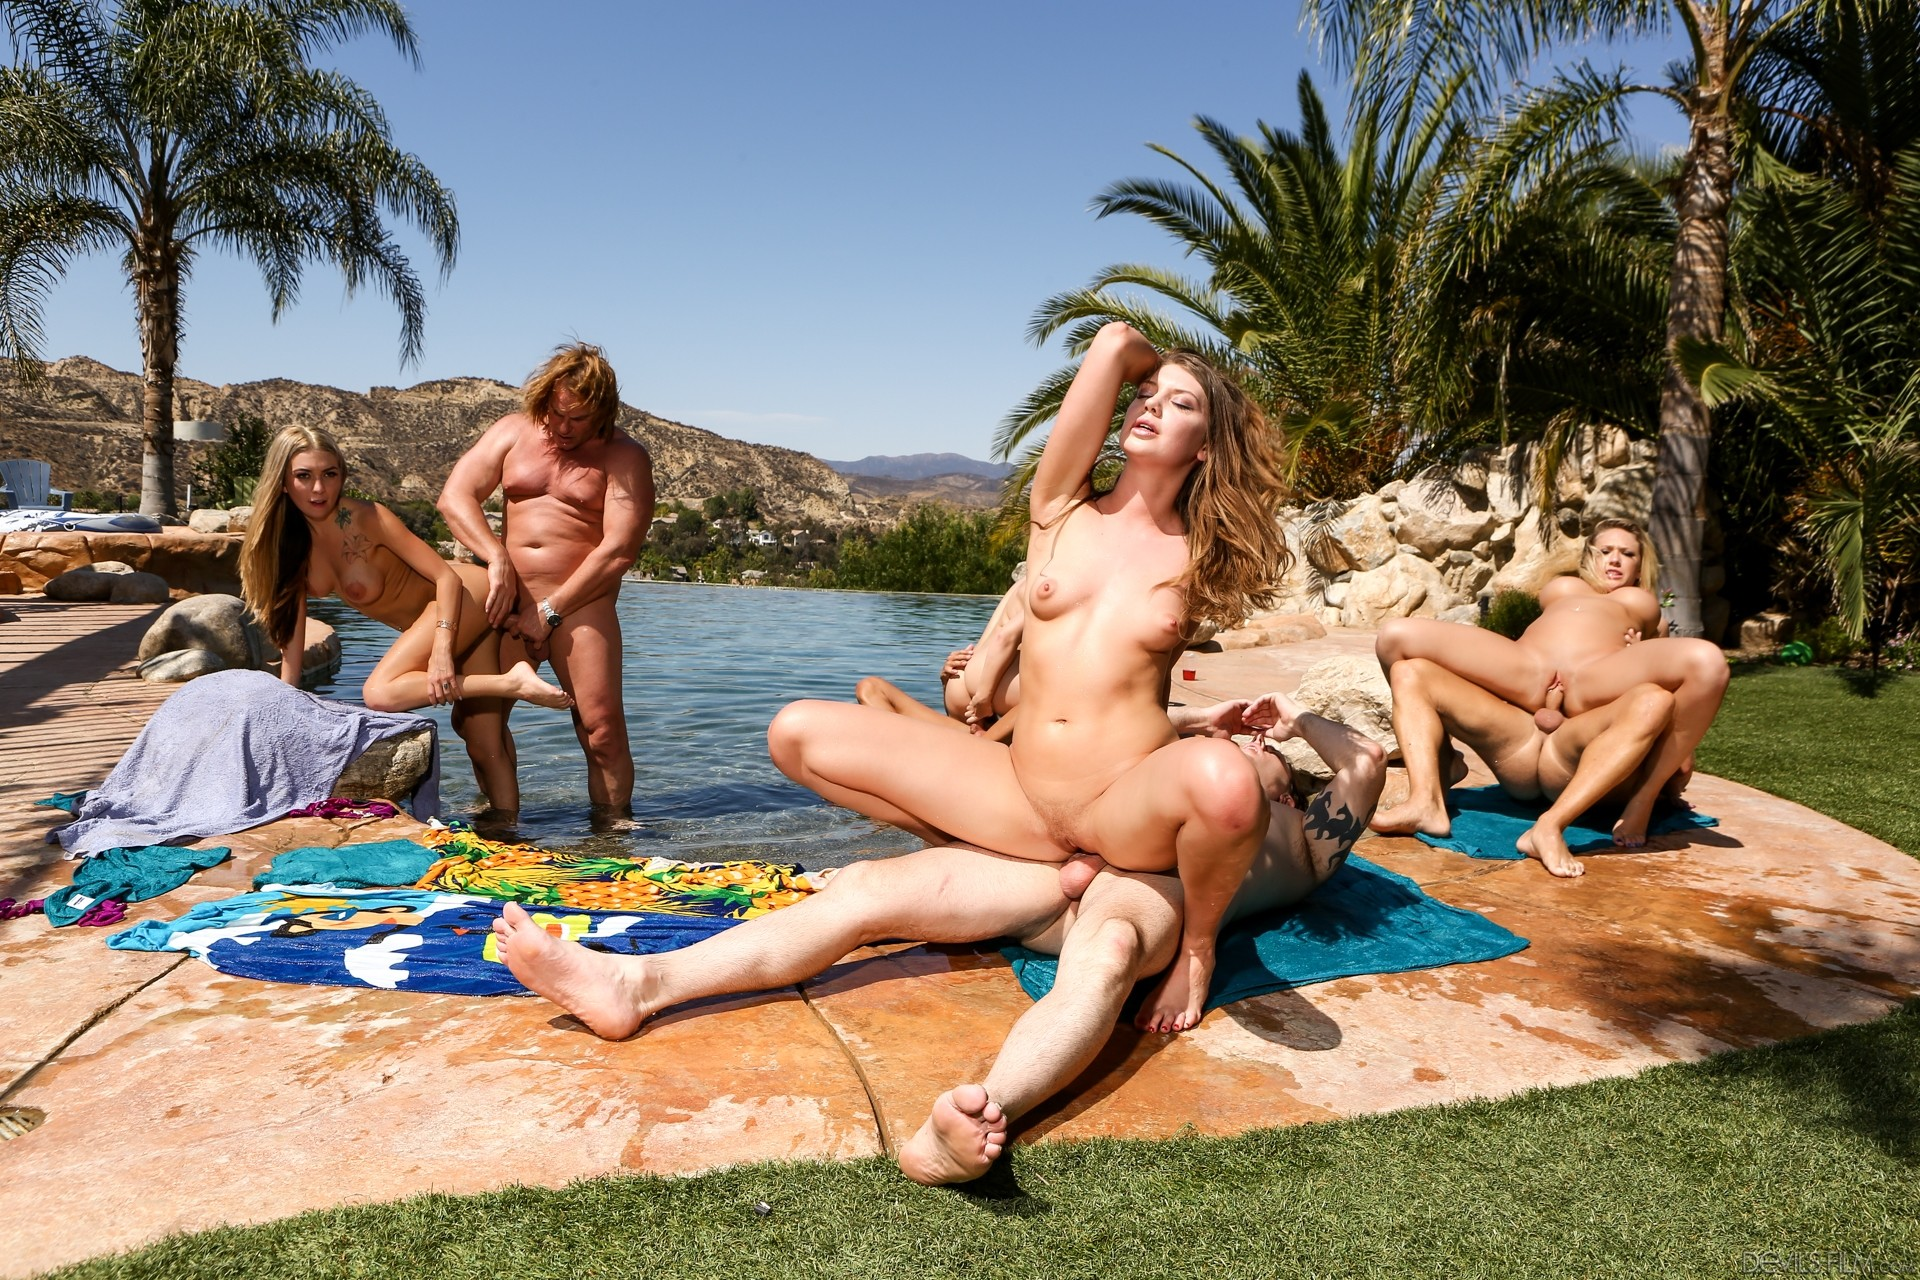 Euro nudist beach sex orgies sexy